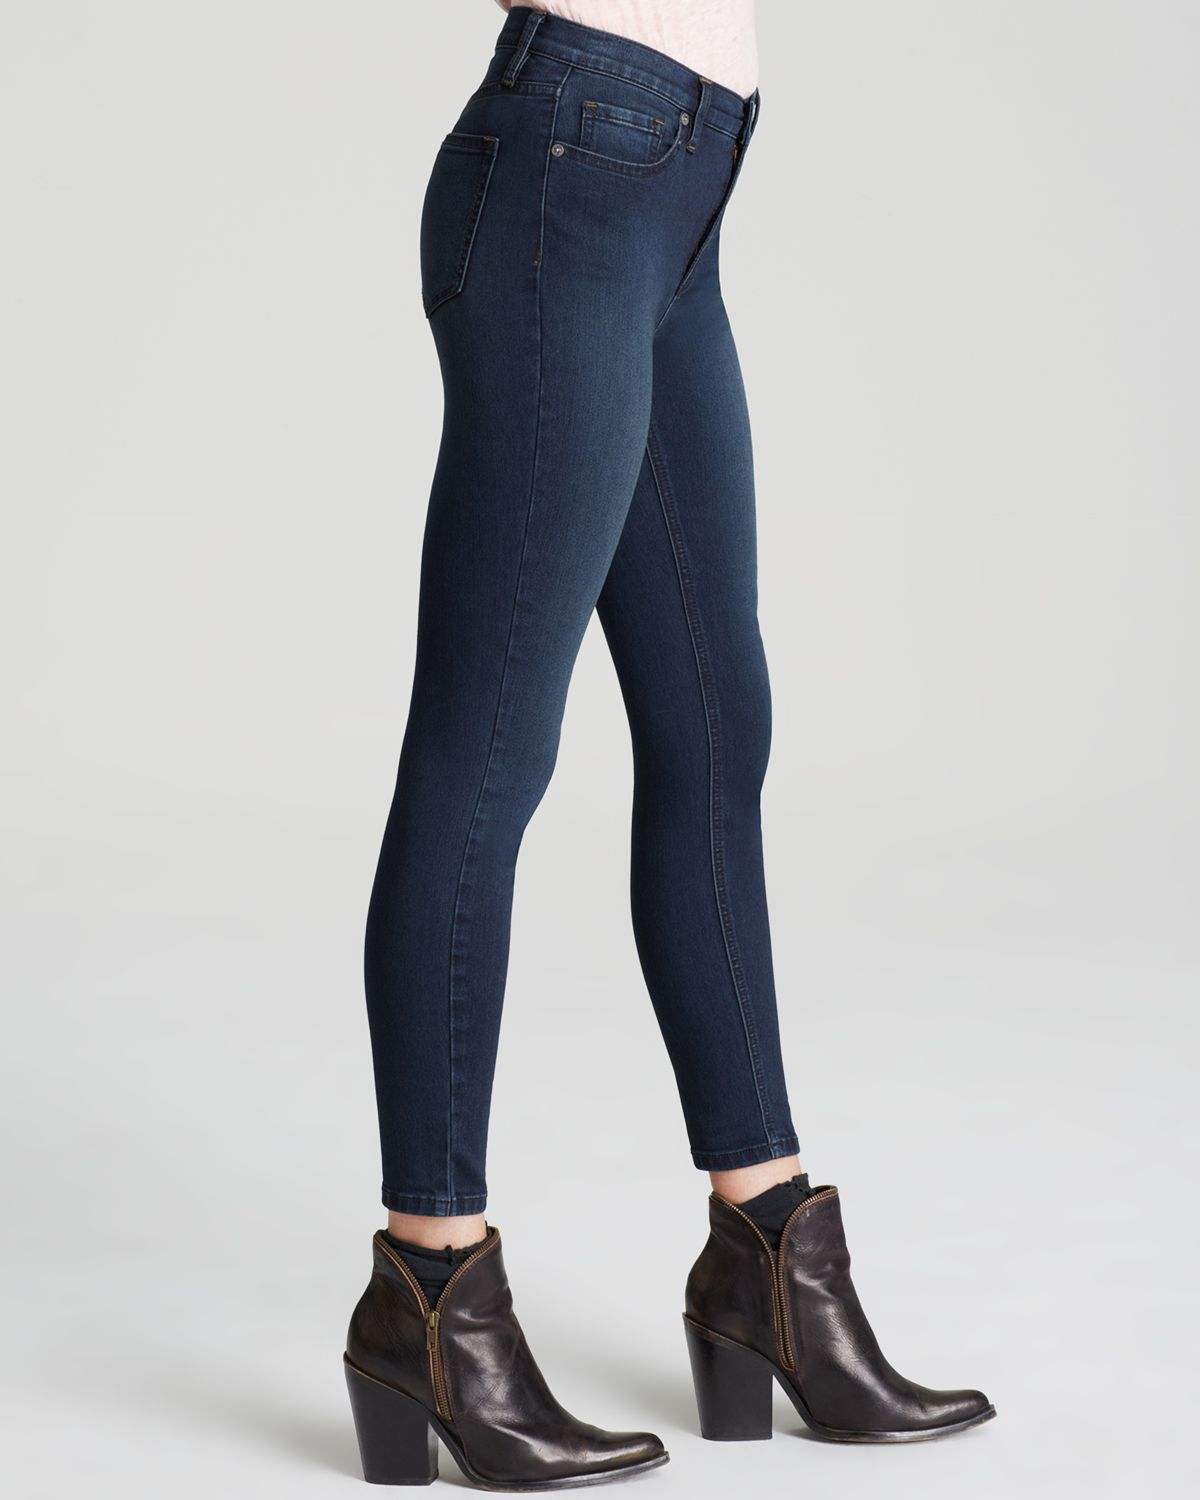 77323f8a7bea Lyst - Free People Jeans - High Rise Roller Crop Skinny In Cane in Blue